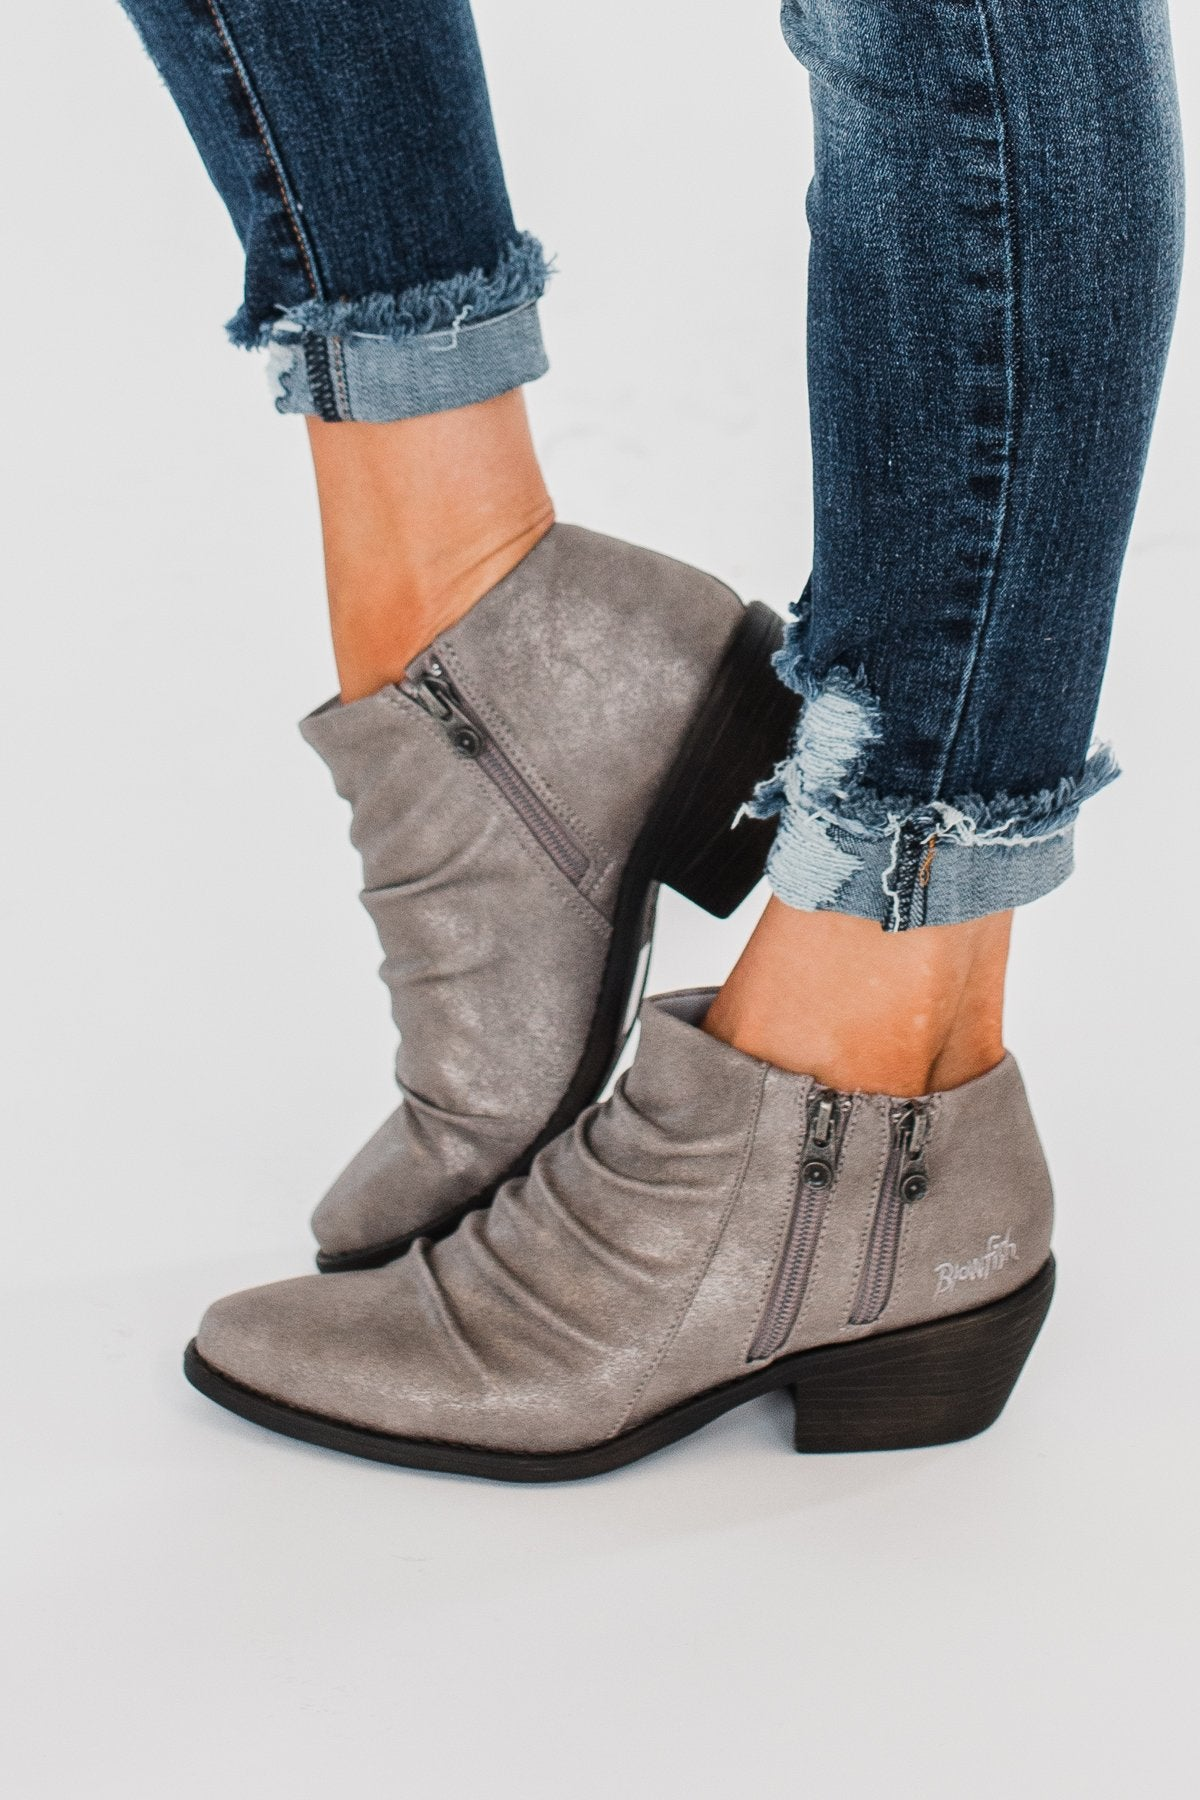 Blowfish Wander Booties- Moonlight Metallic